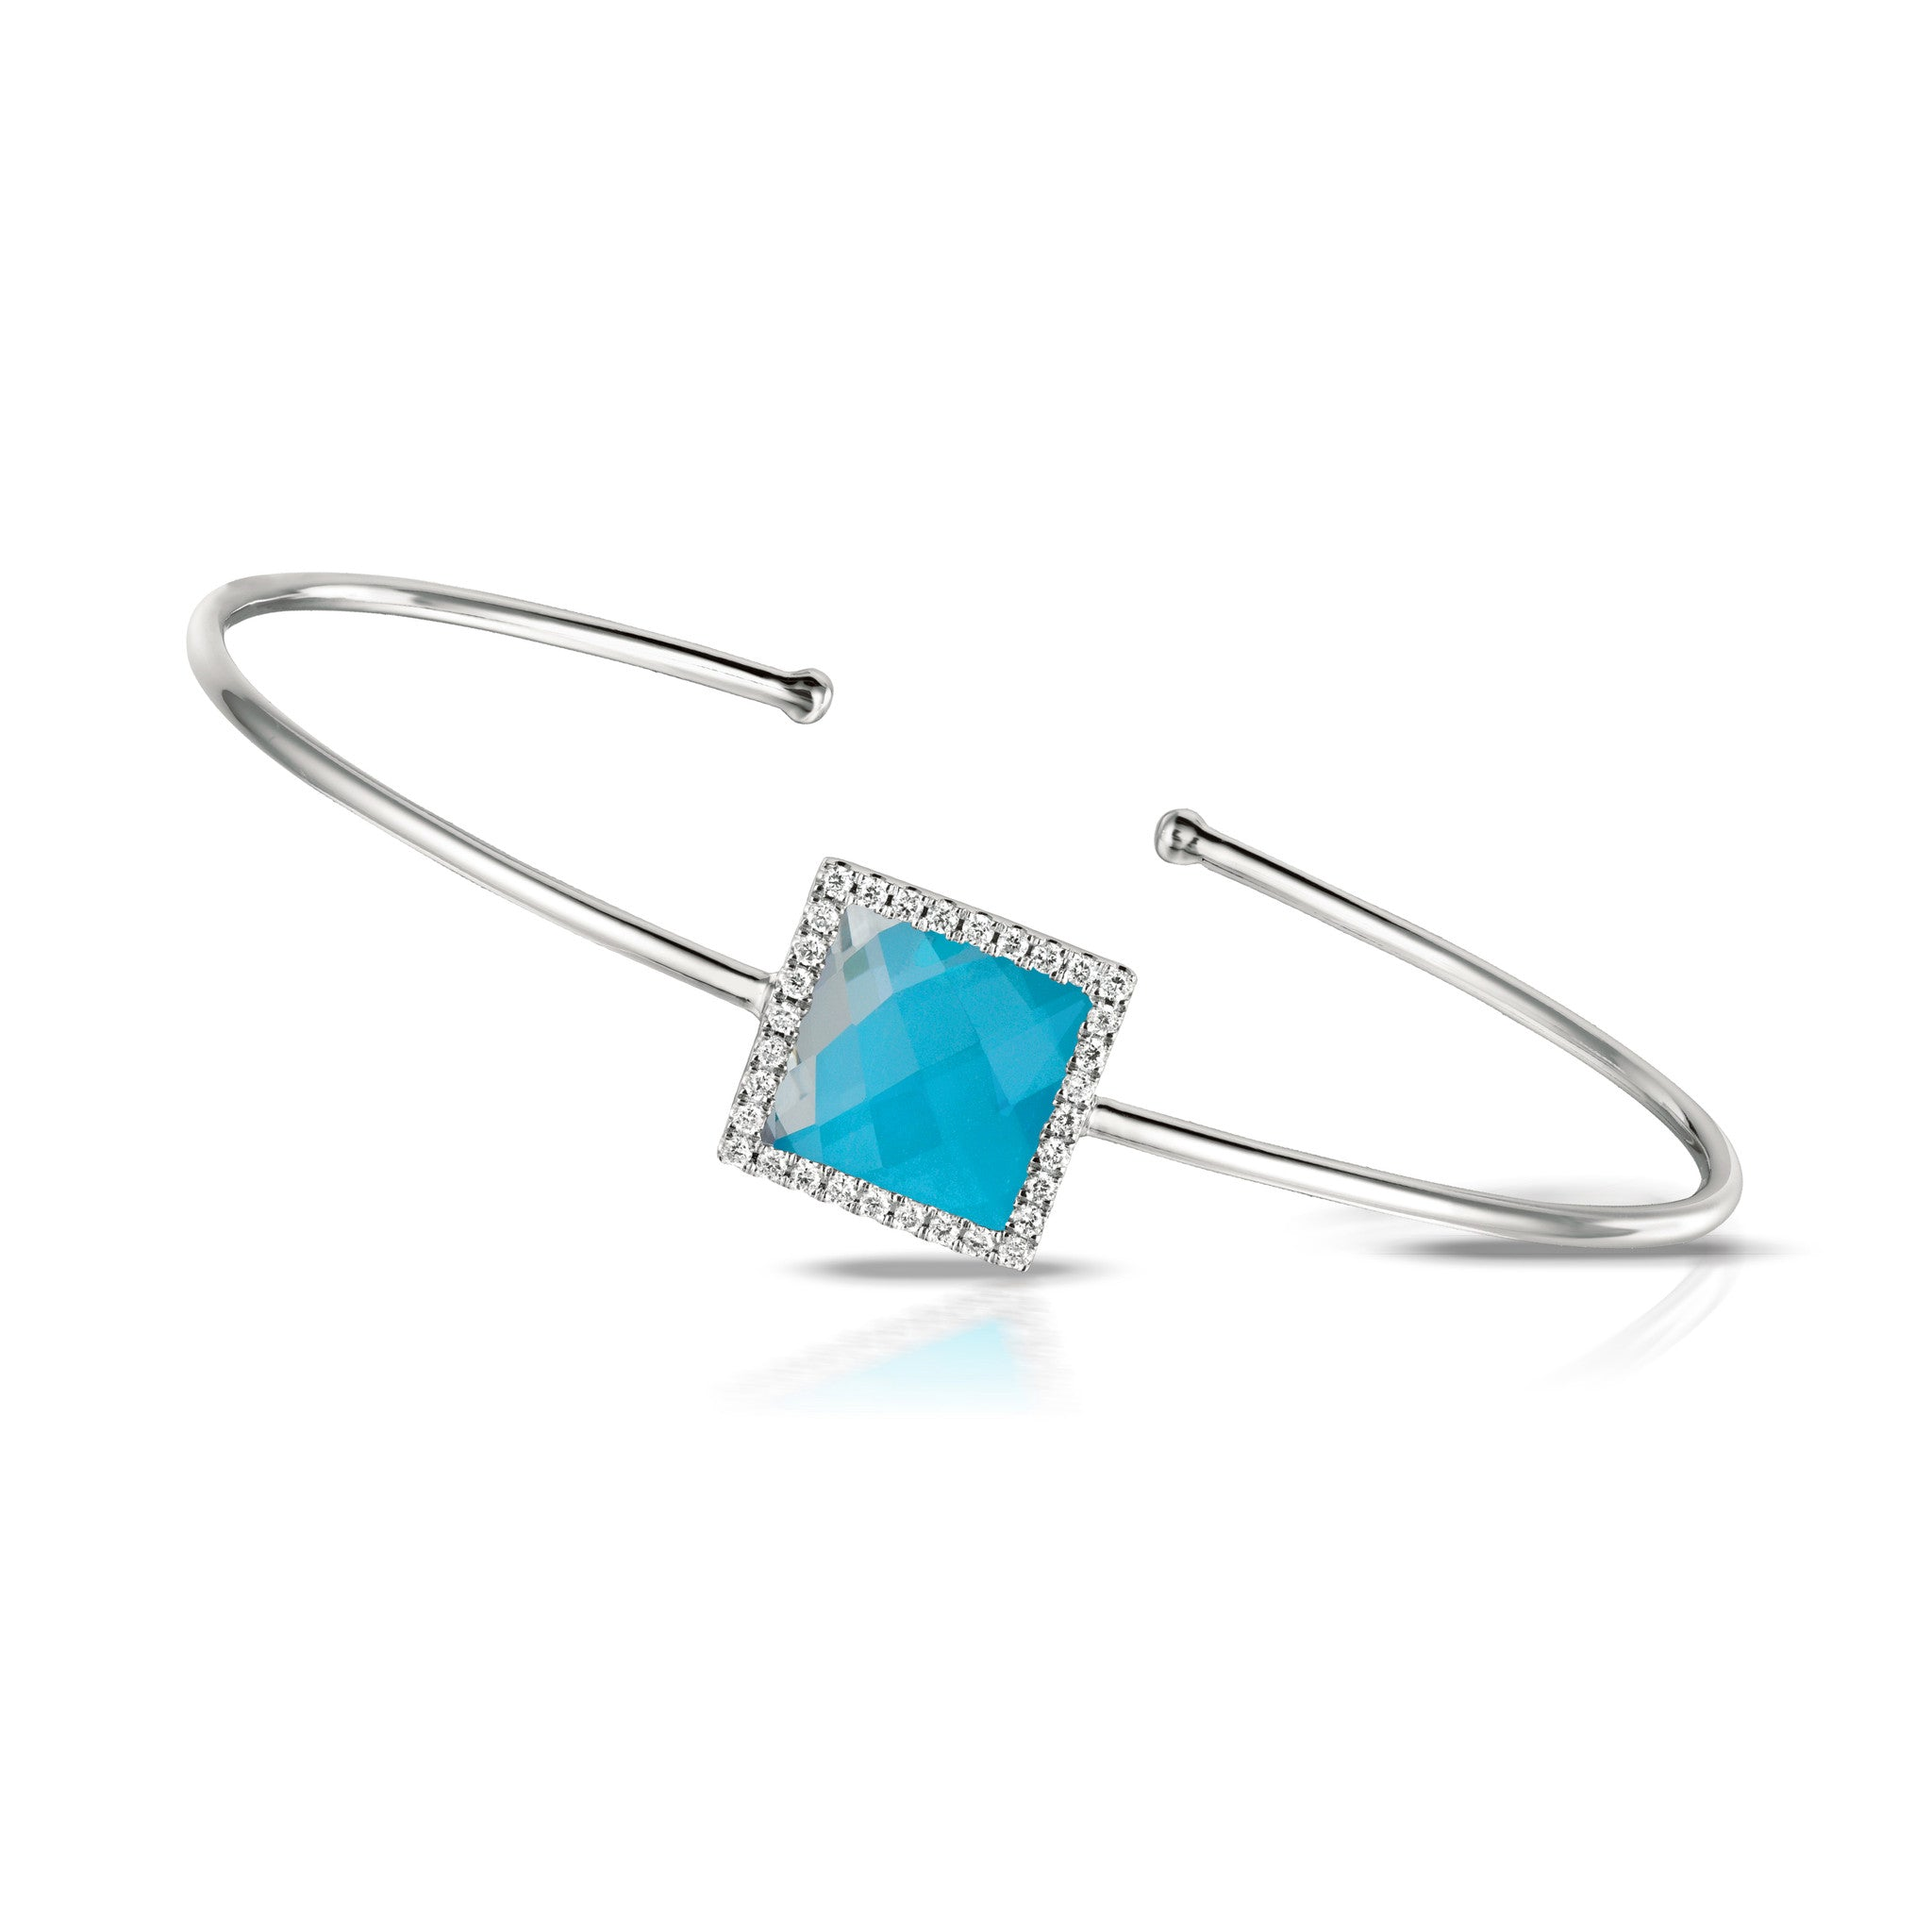 Doves St Barth White Gold Bangle with Turquoise, Clear Topaz and Pave Diamonds